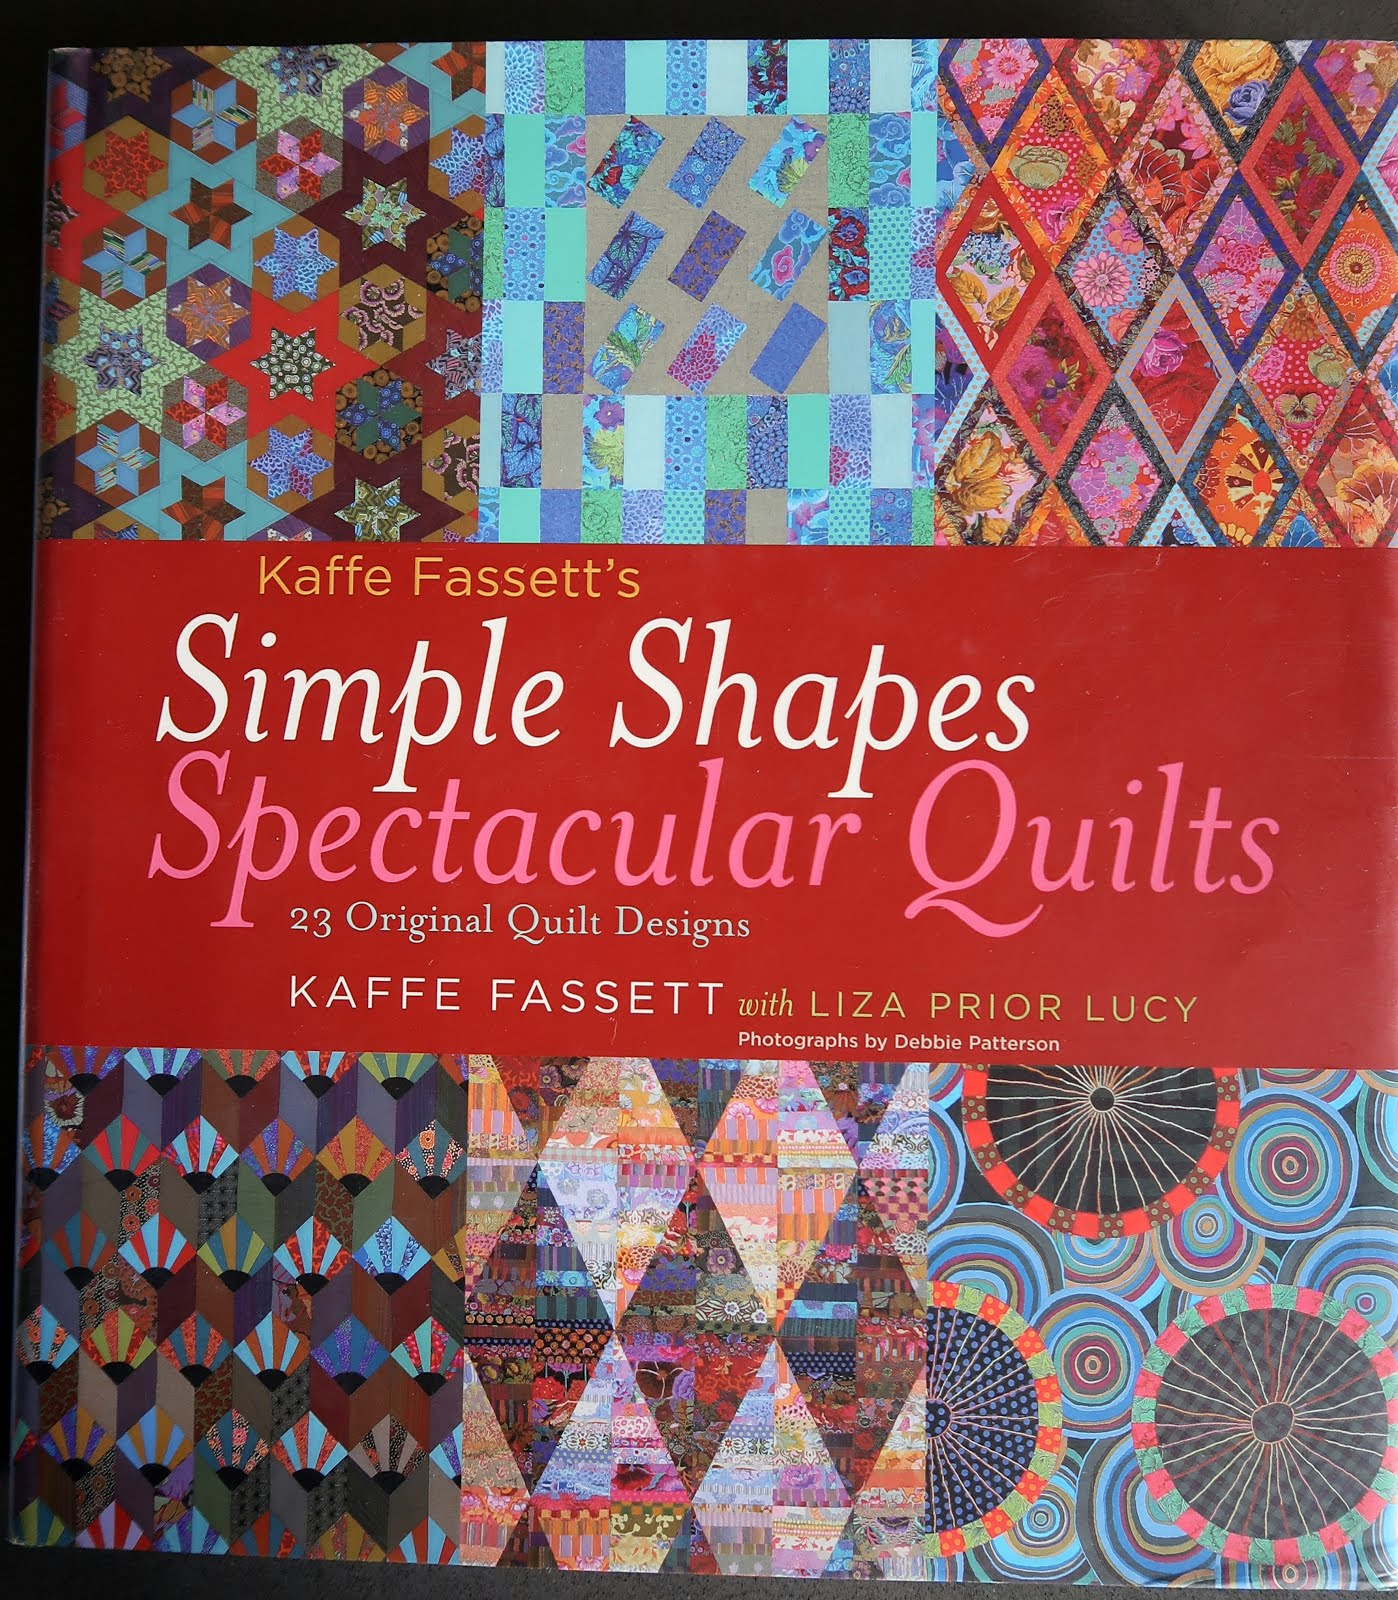 Kaffe Fassett's Simple Shapes, Spectacular Quilts (click!)